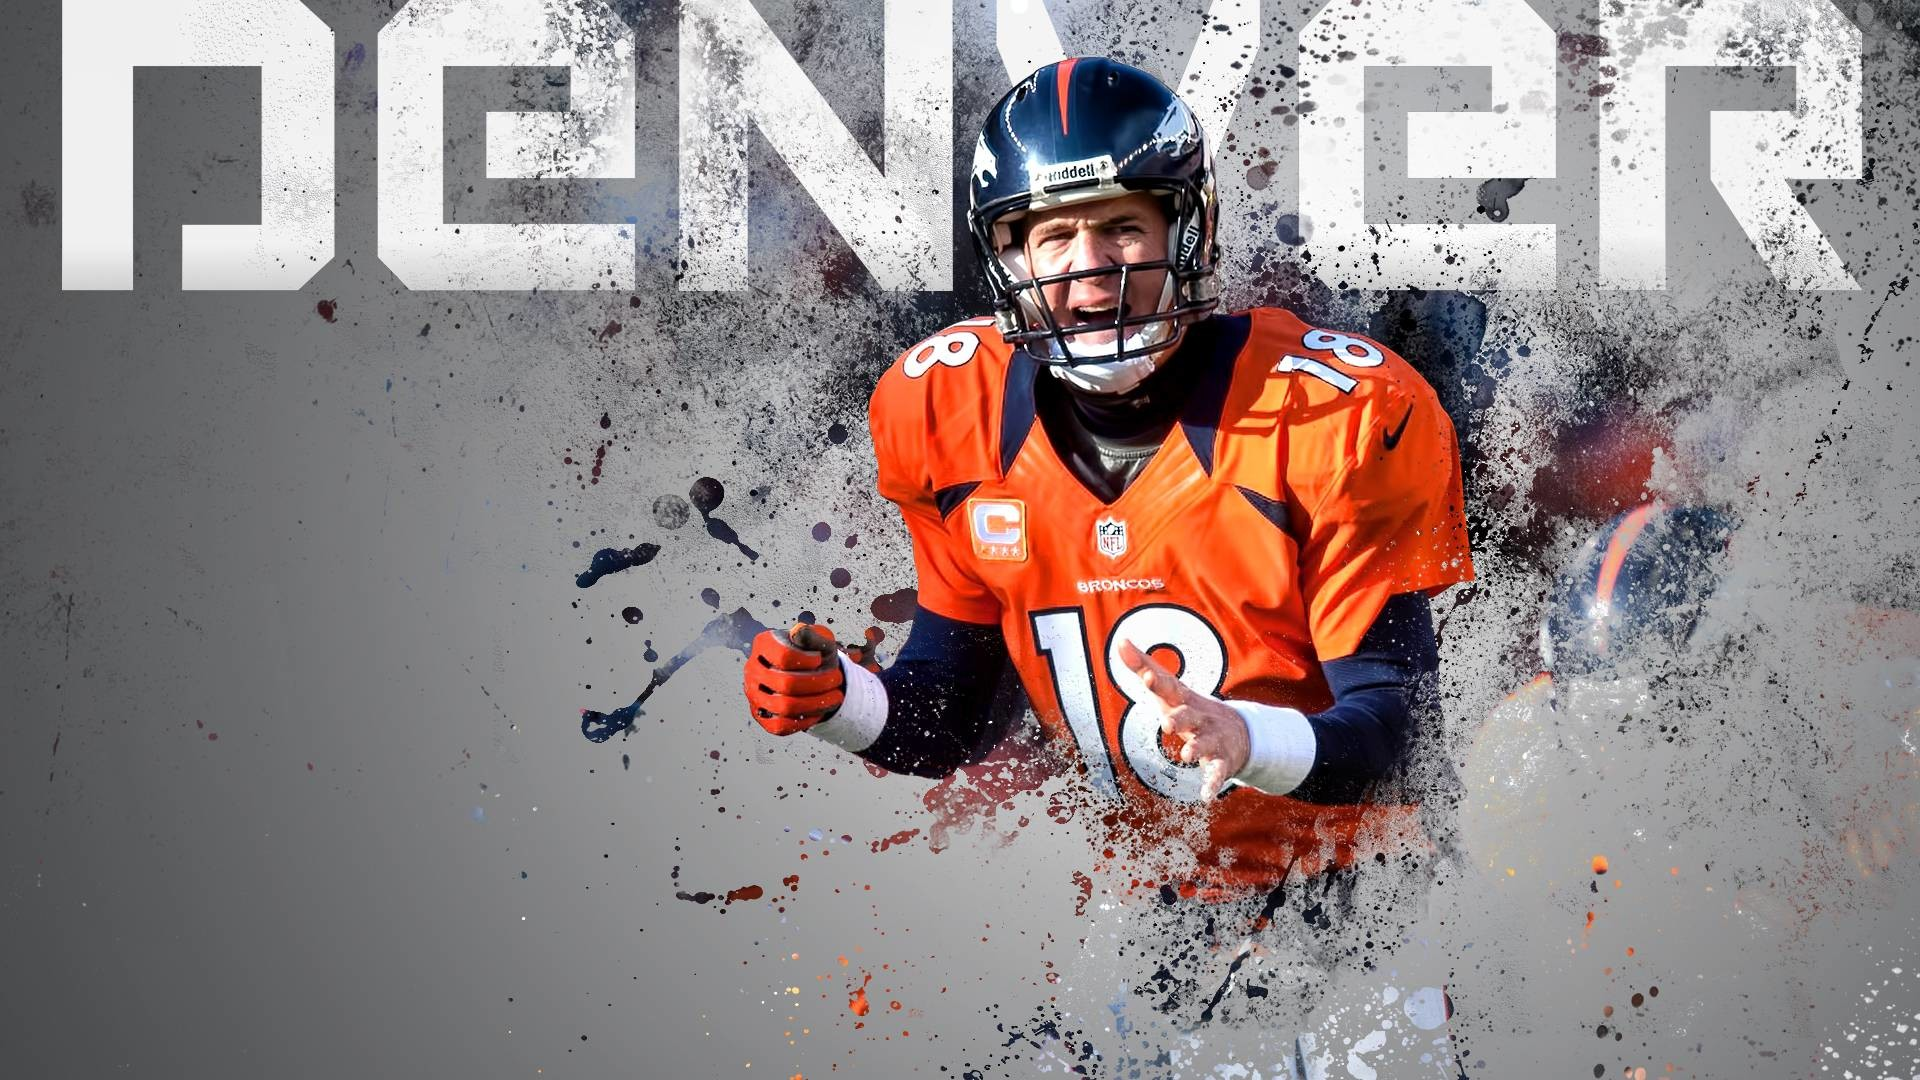 Denver Broncos Wallpaper HD Player Number 18.